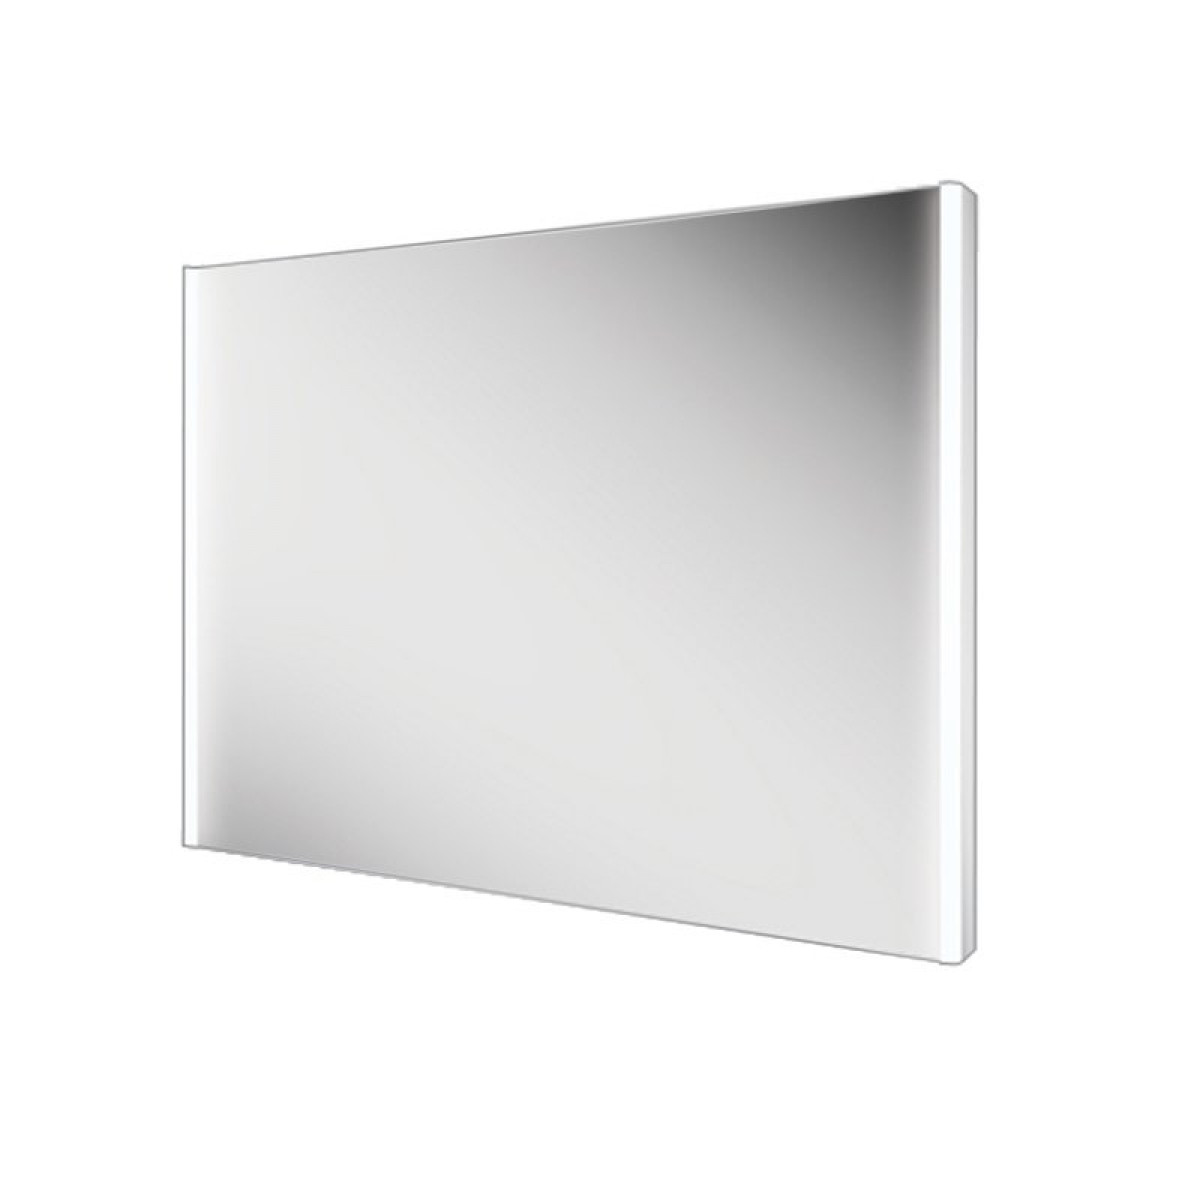 steam free bathroom mirrors hib zircon 80 led steam free bathroom mirror 77620000 20674